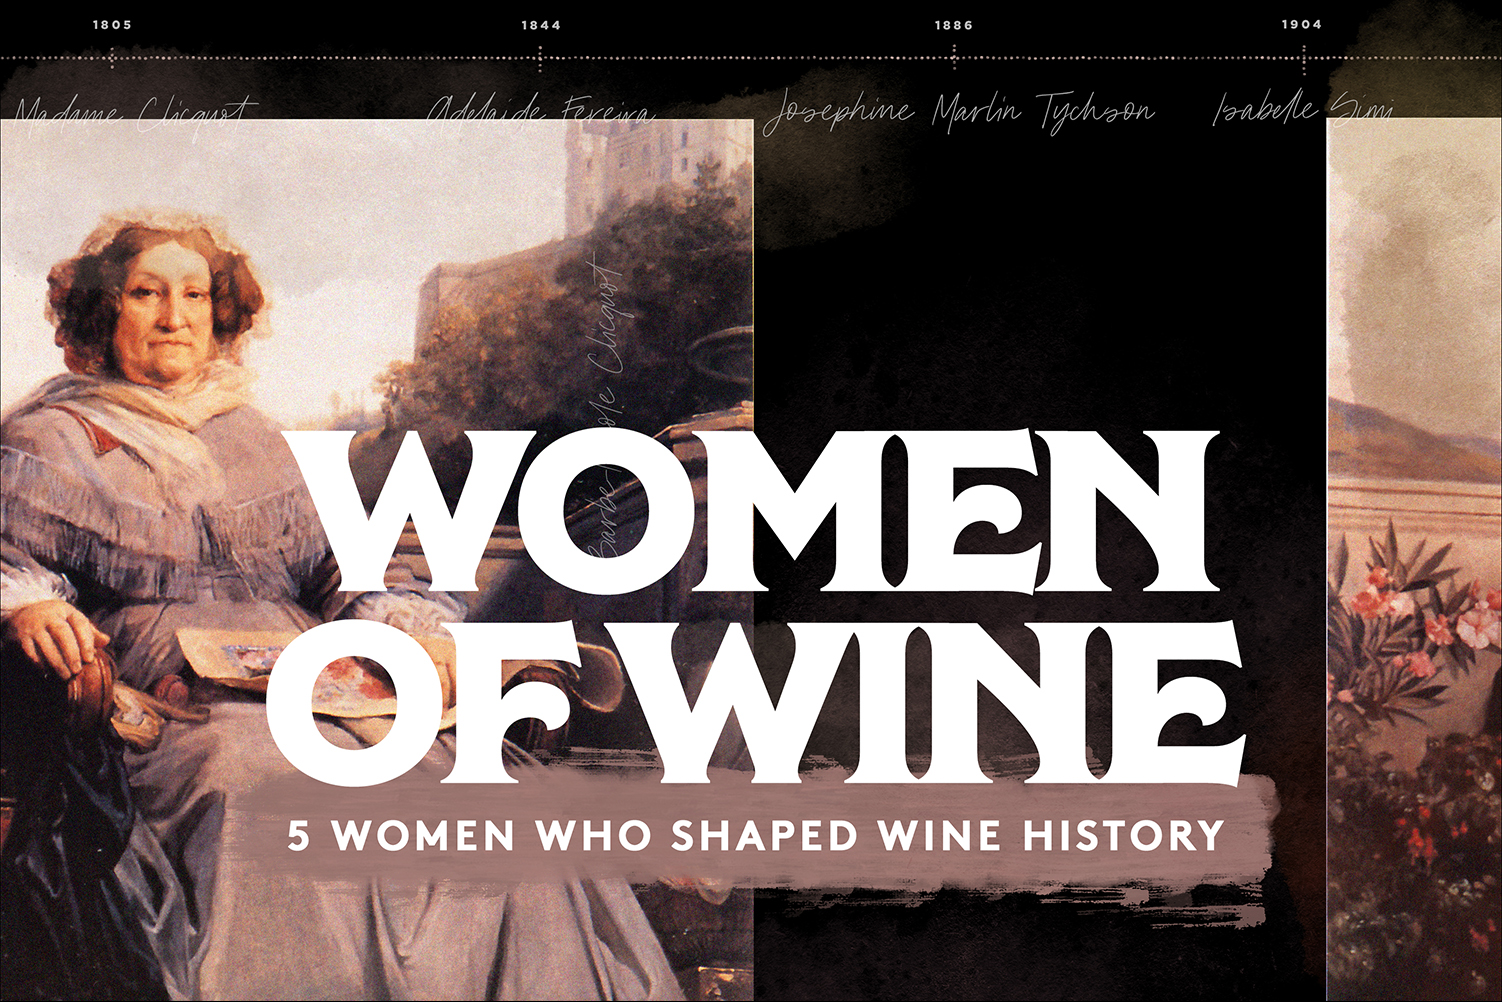 5 Women Who Shaped Wine History